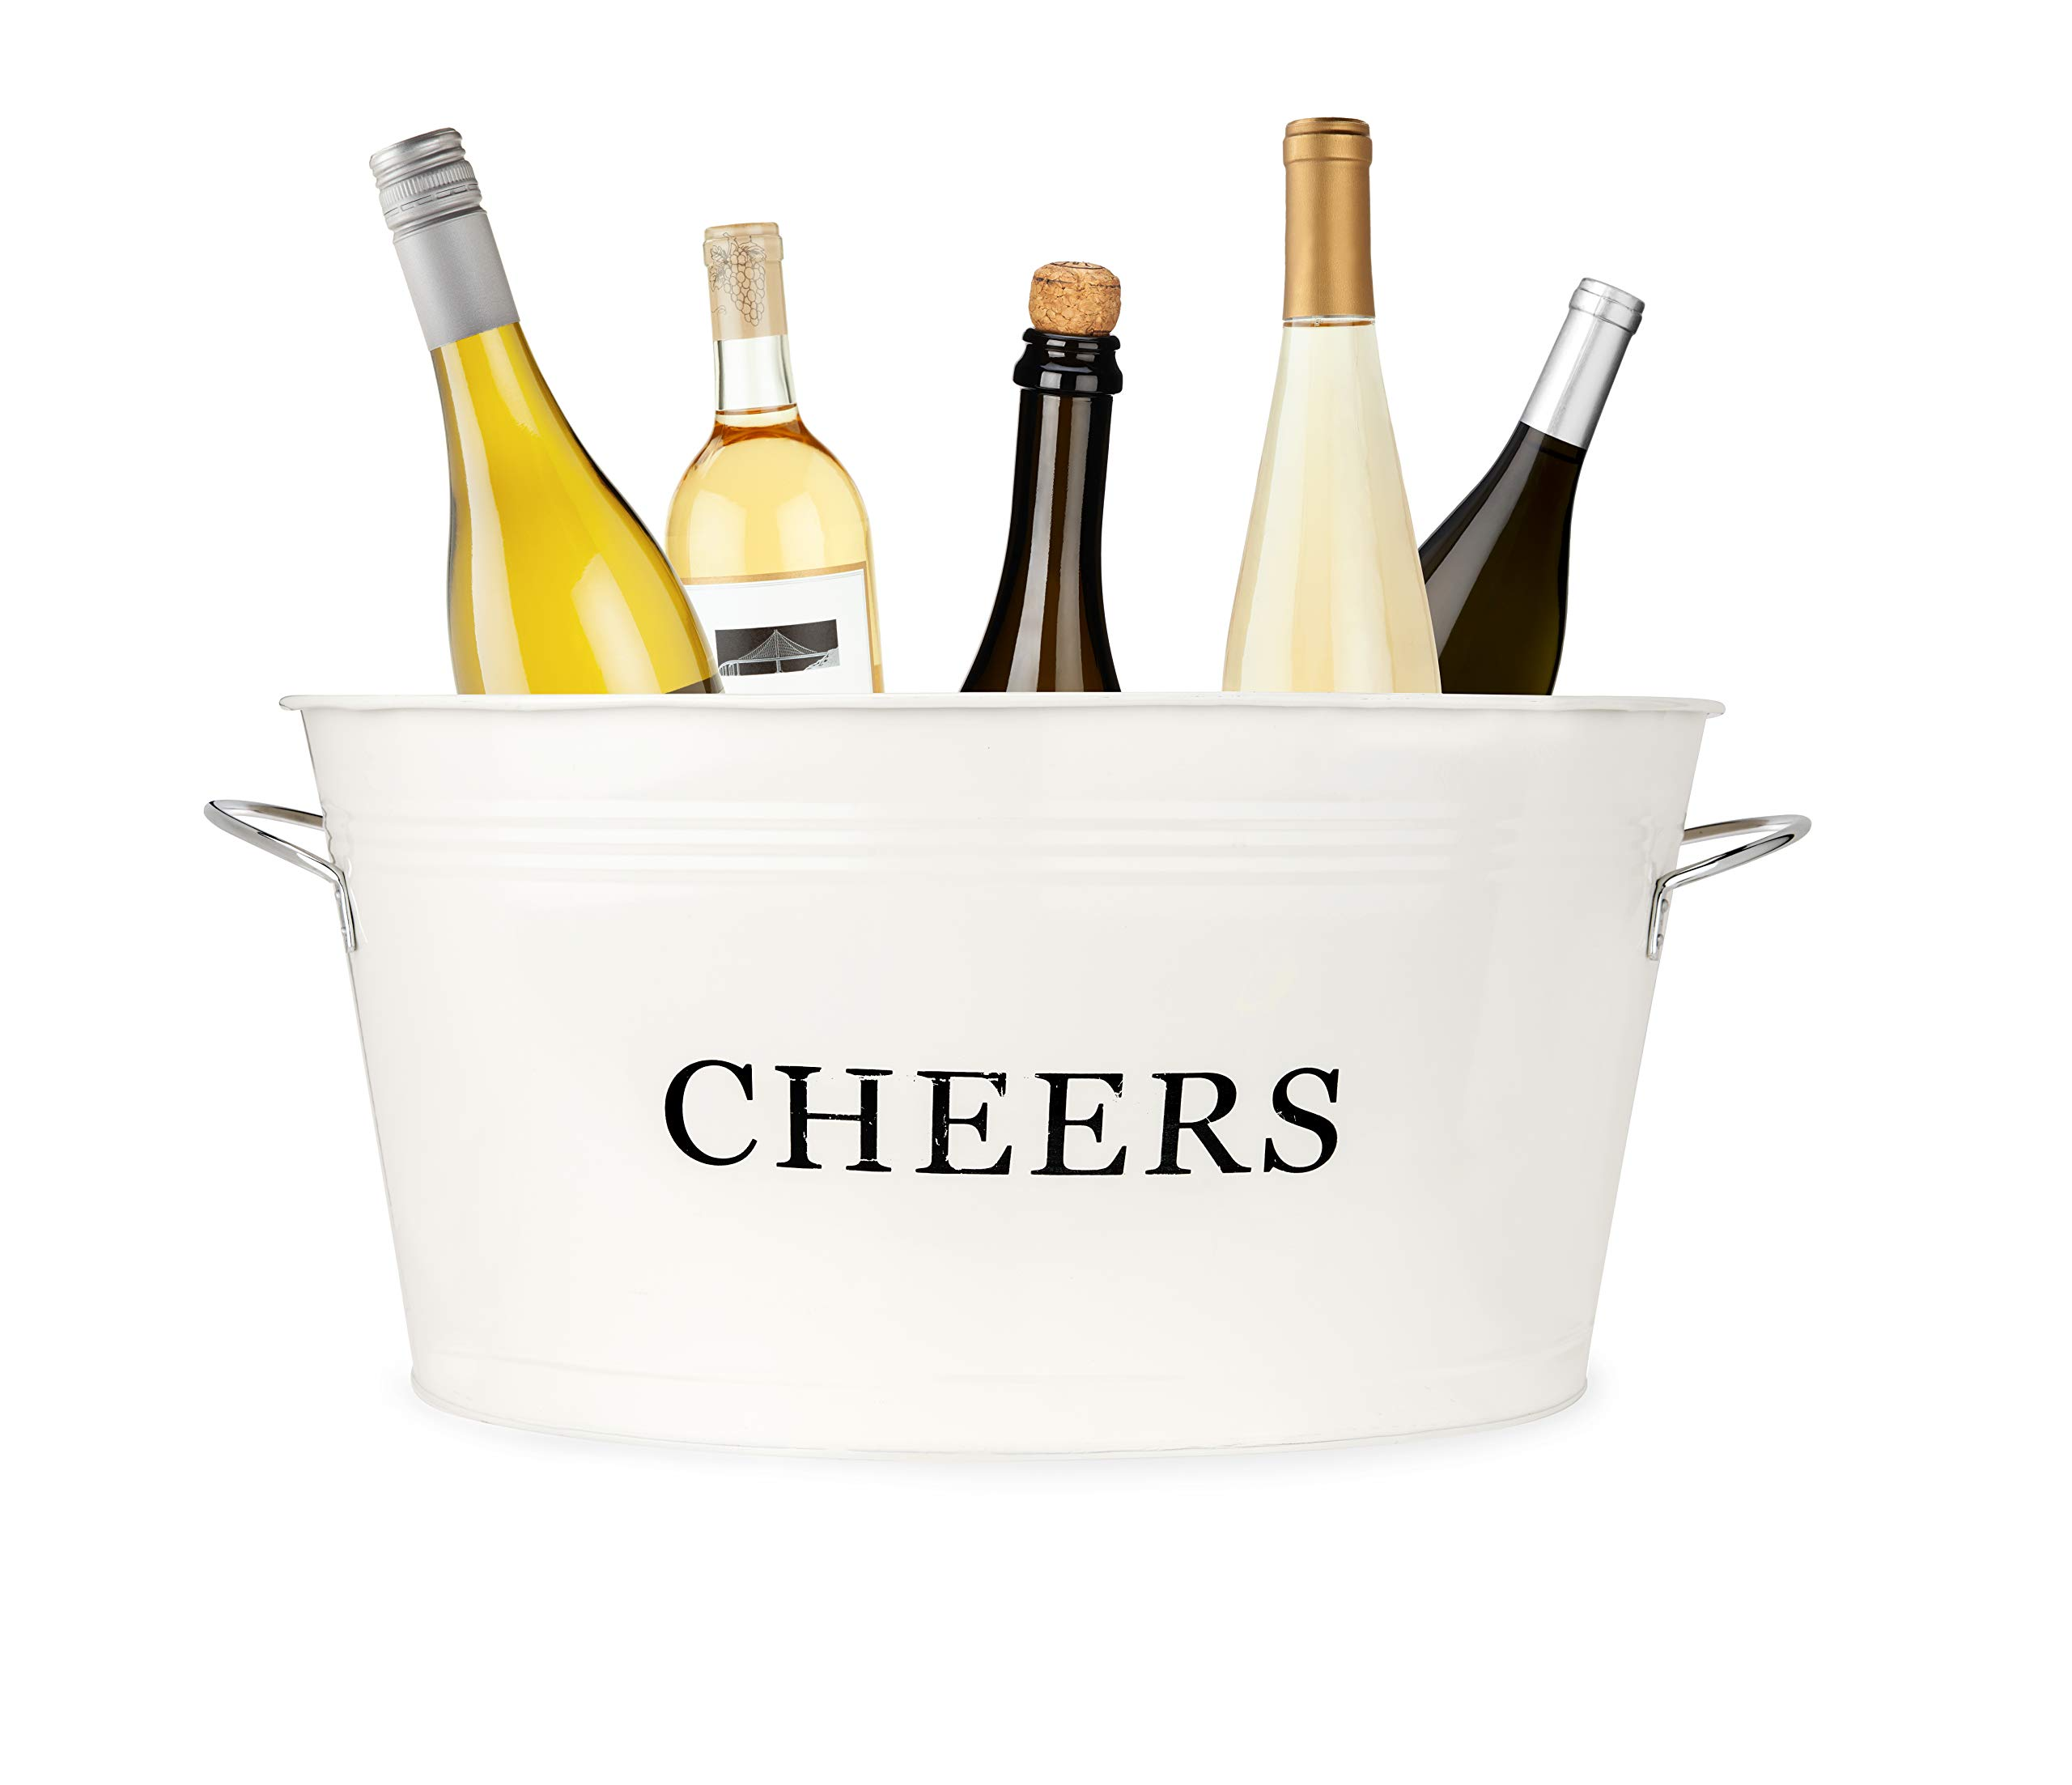 Twine Rustic Farmhouse Galvanized Cheers Tub, Cream 6.3 gallons White by Twine